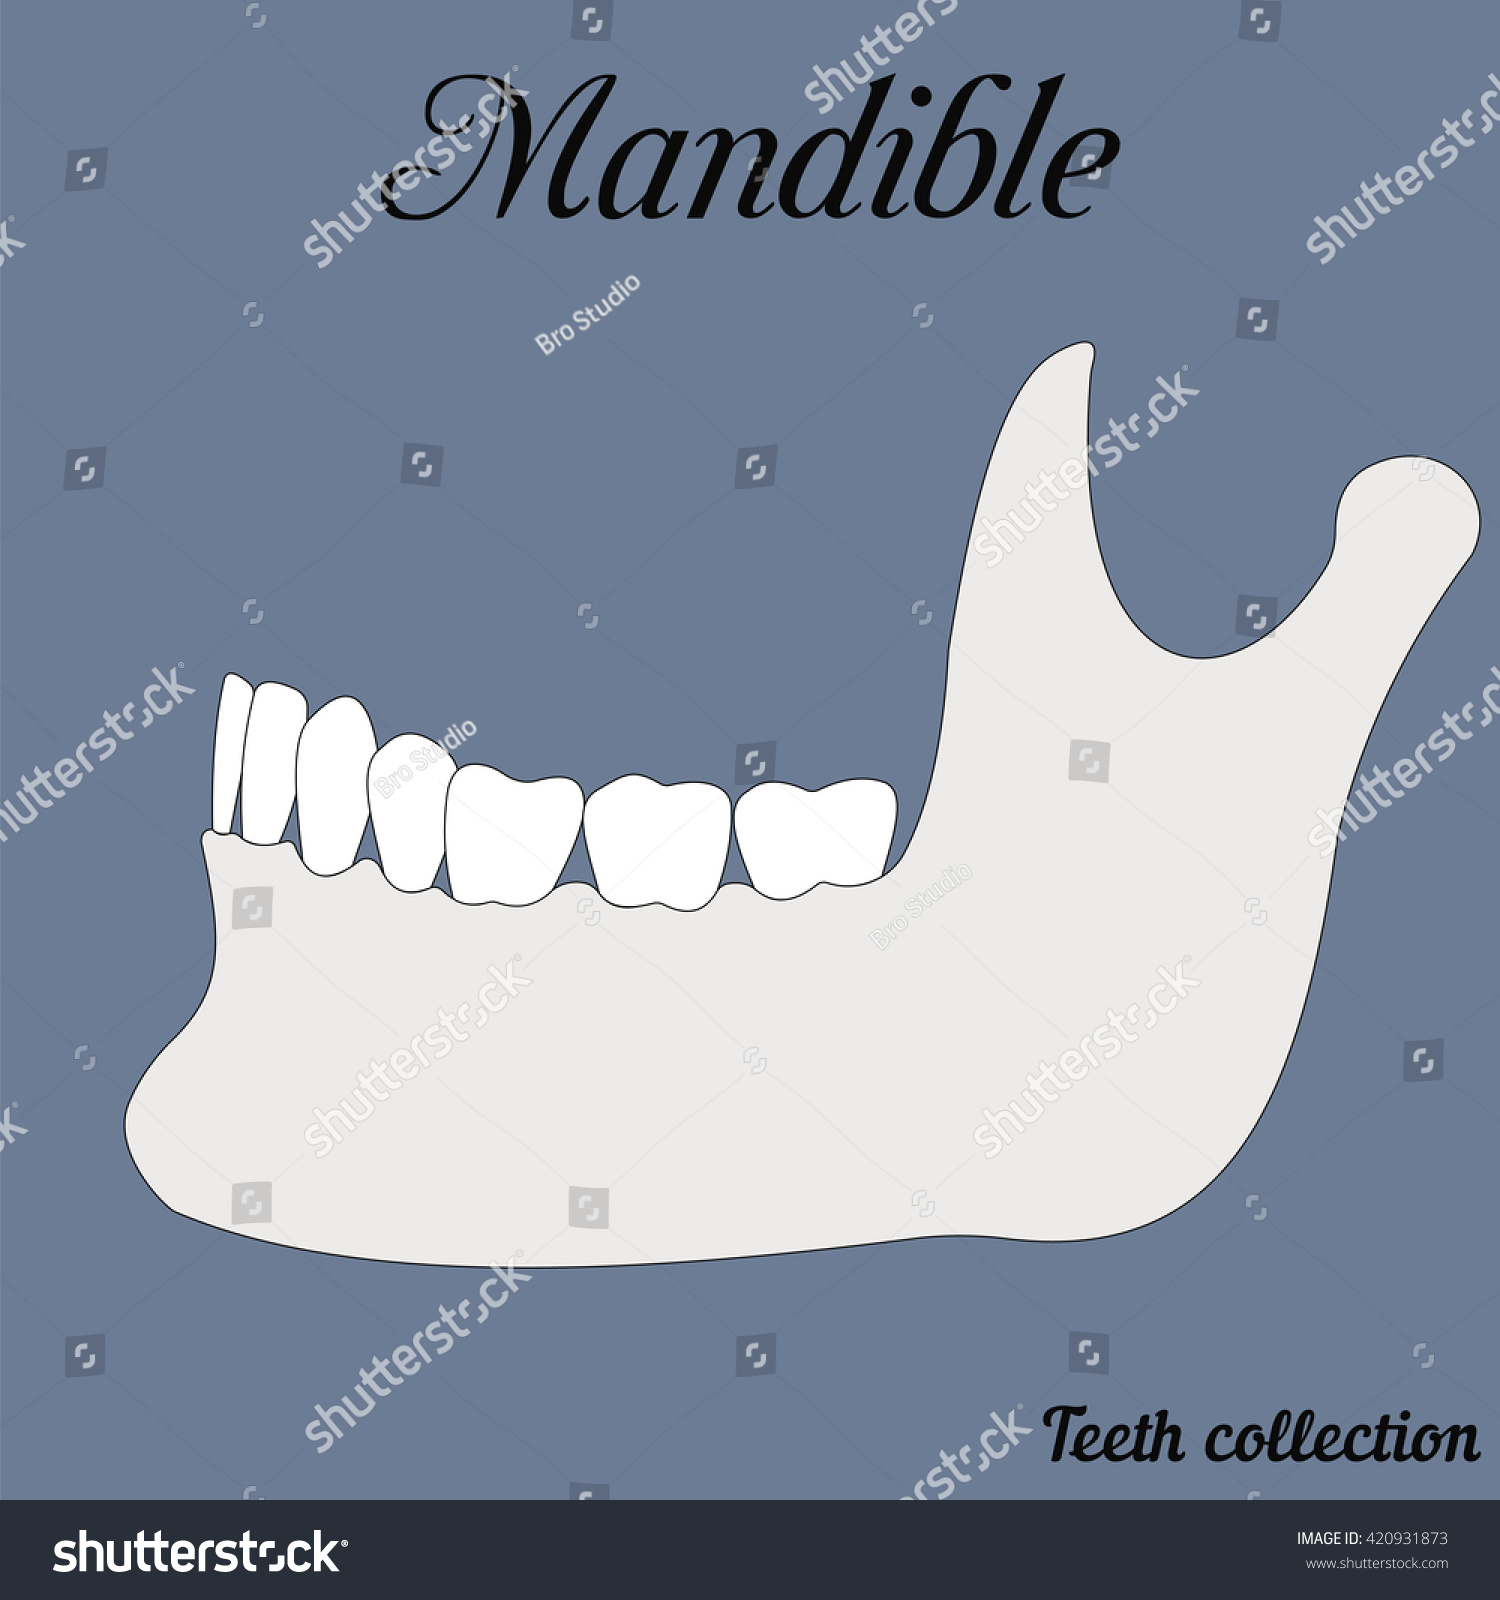 mandible bite closure of teeth incisor canine premolar molar upper and lower jaw Vector illustration for print or design of the dental clinic